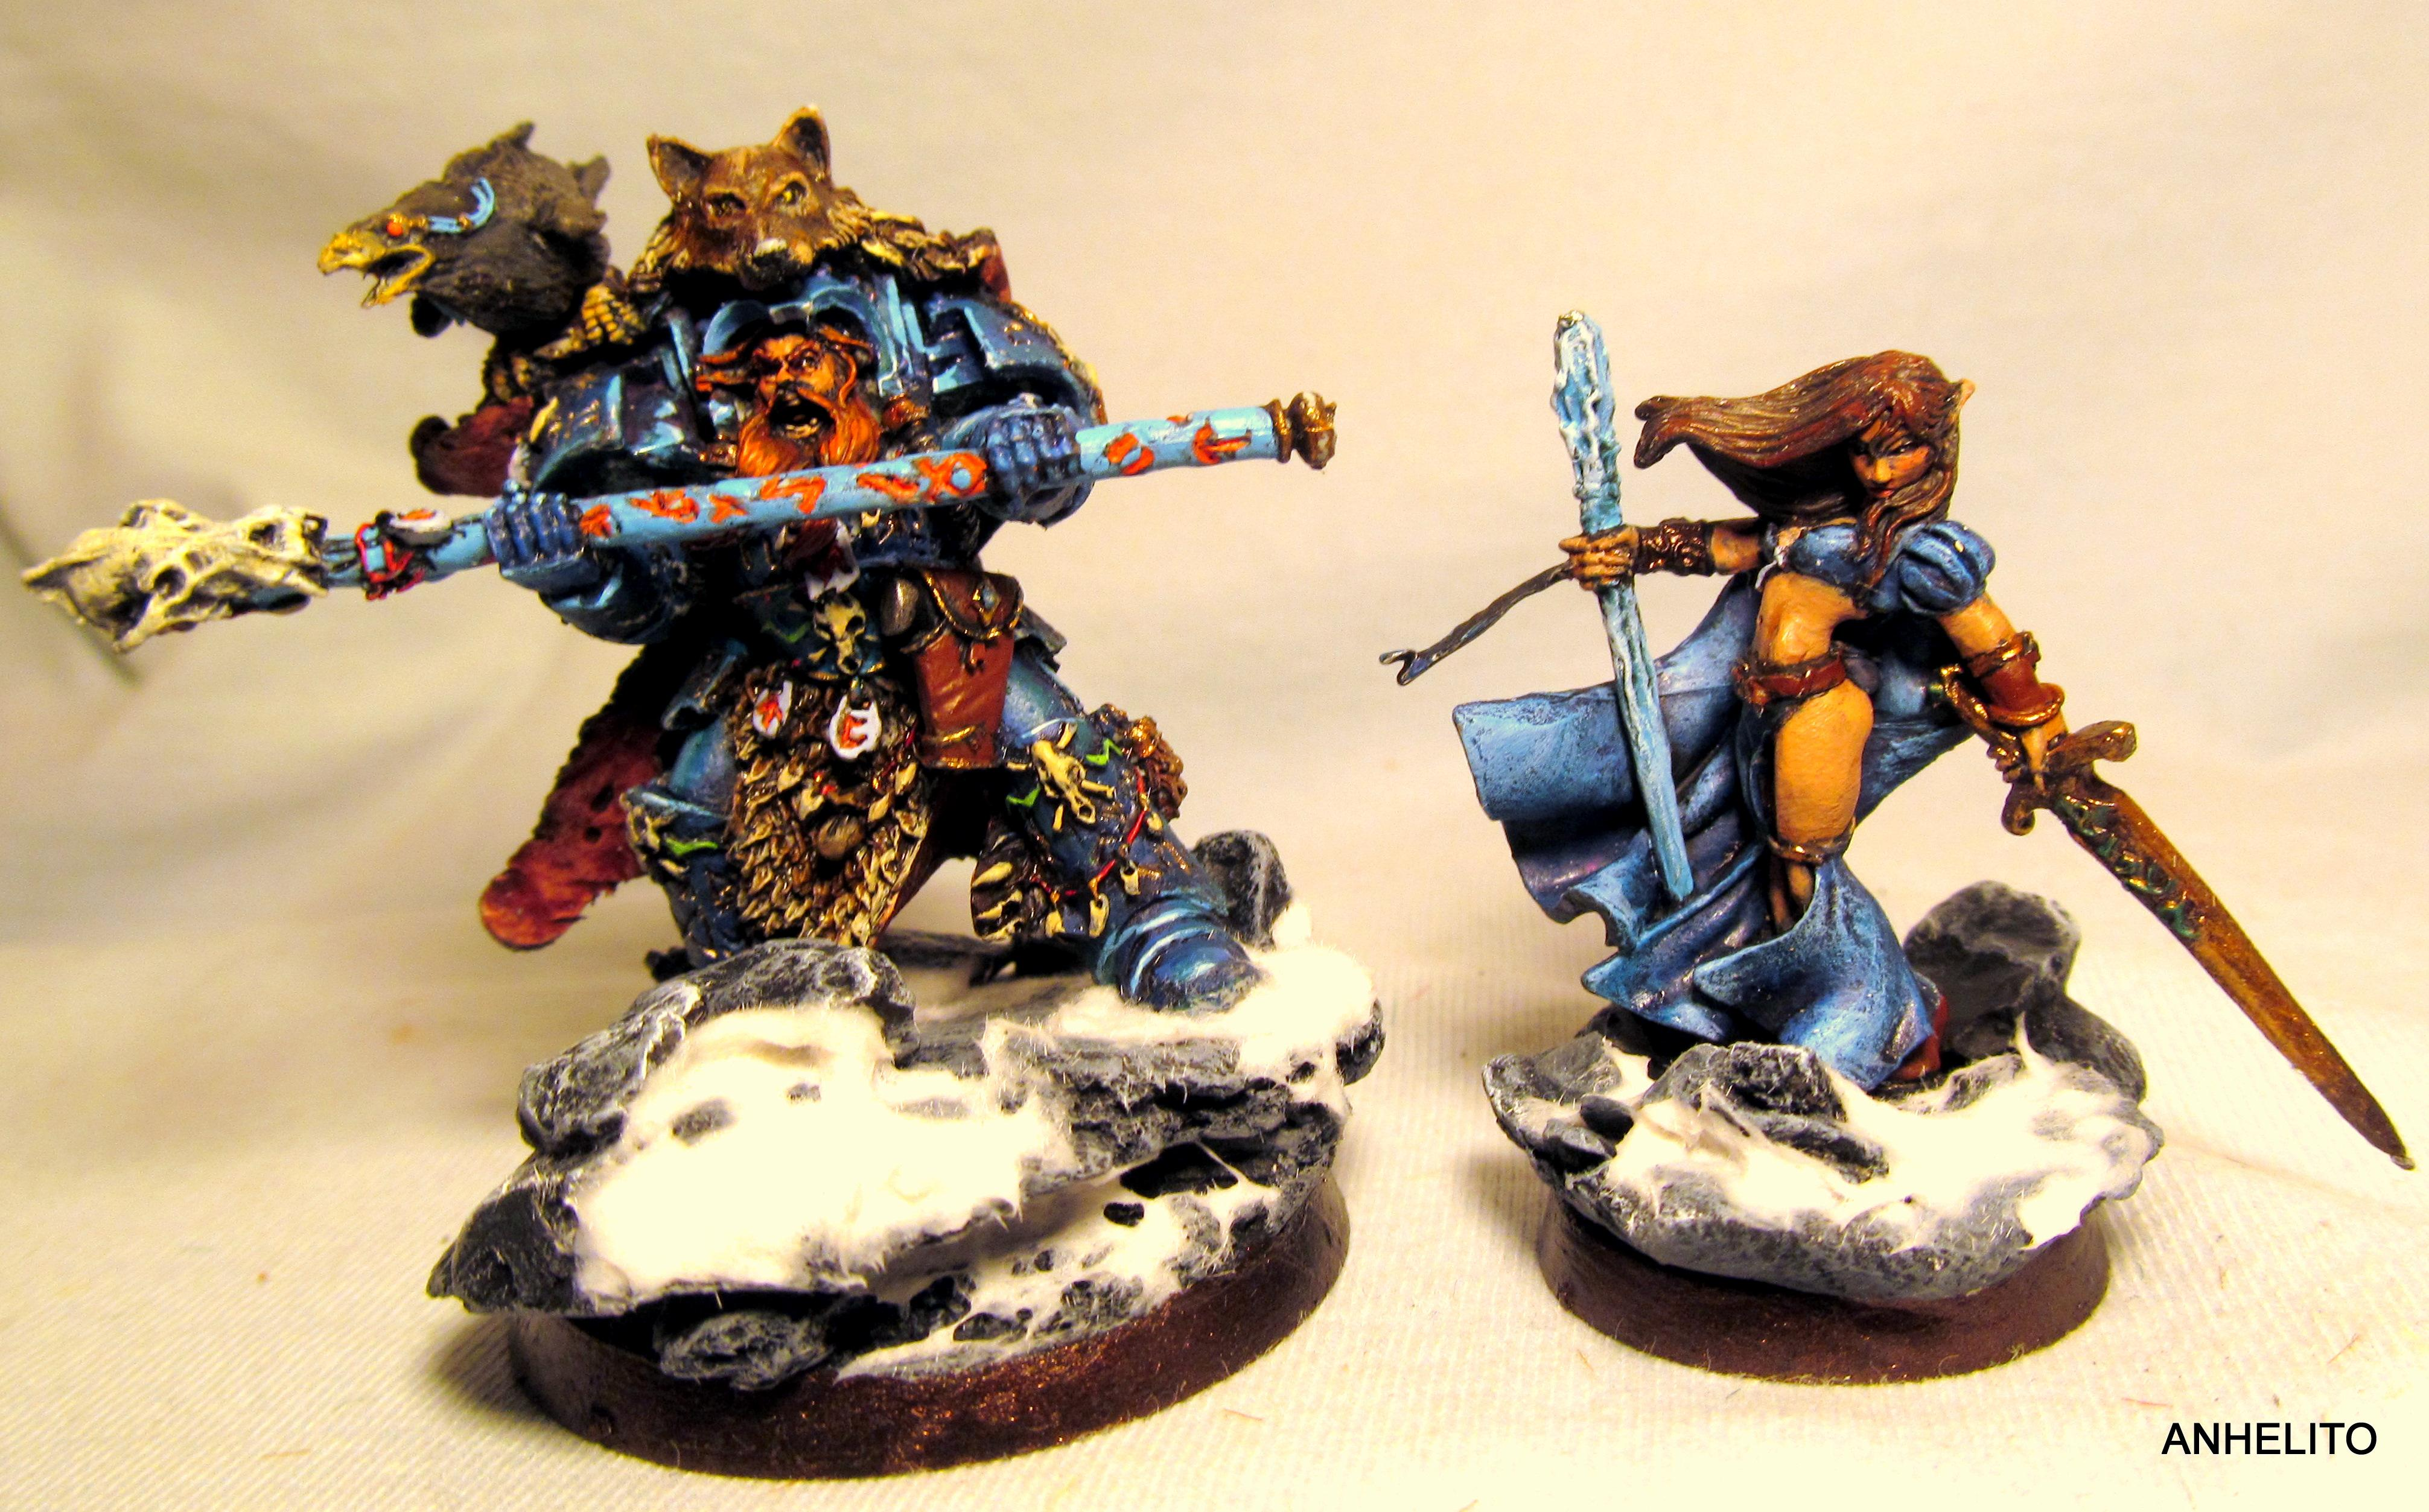 Base, Female, Snow, Space Wolves, Warhammer 40,000